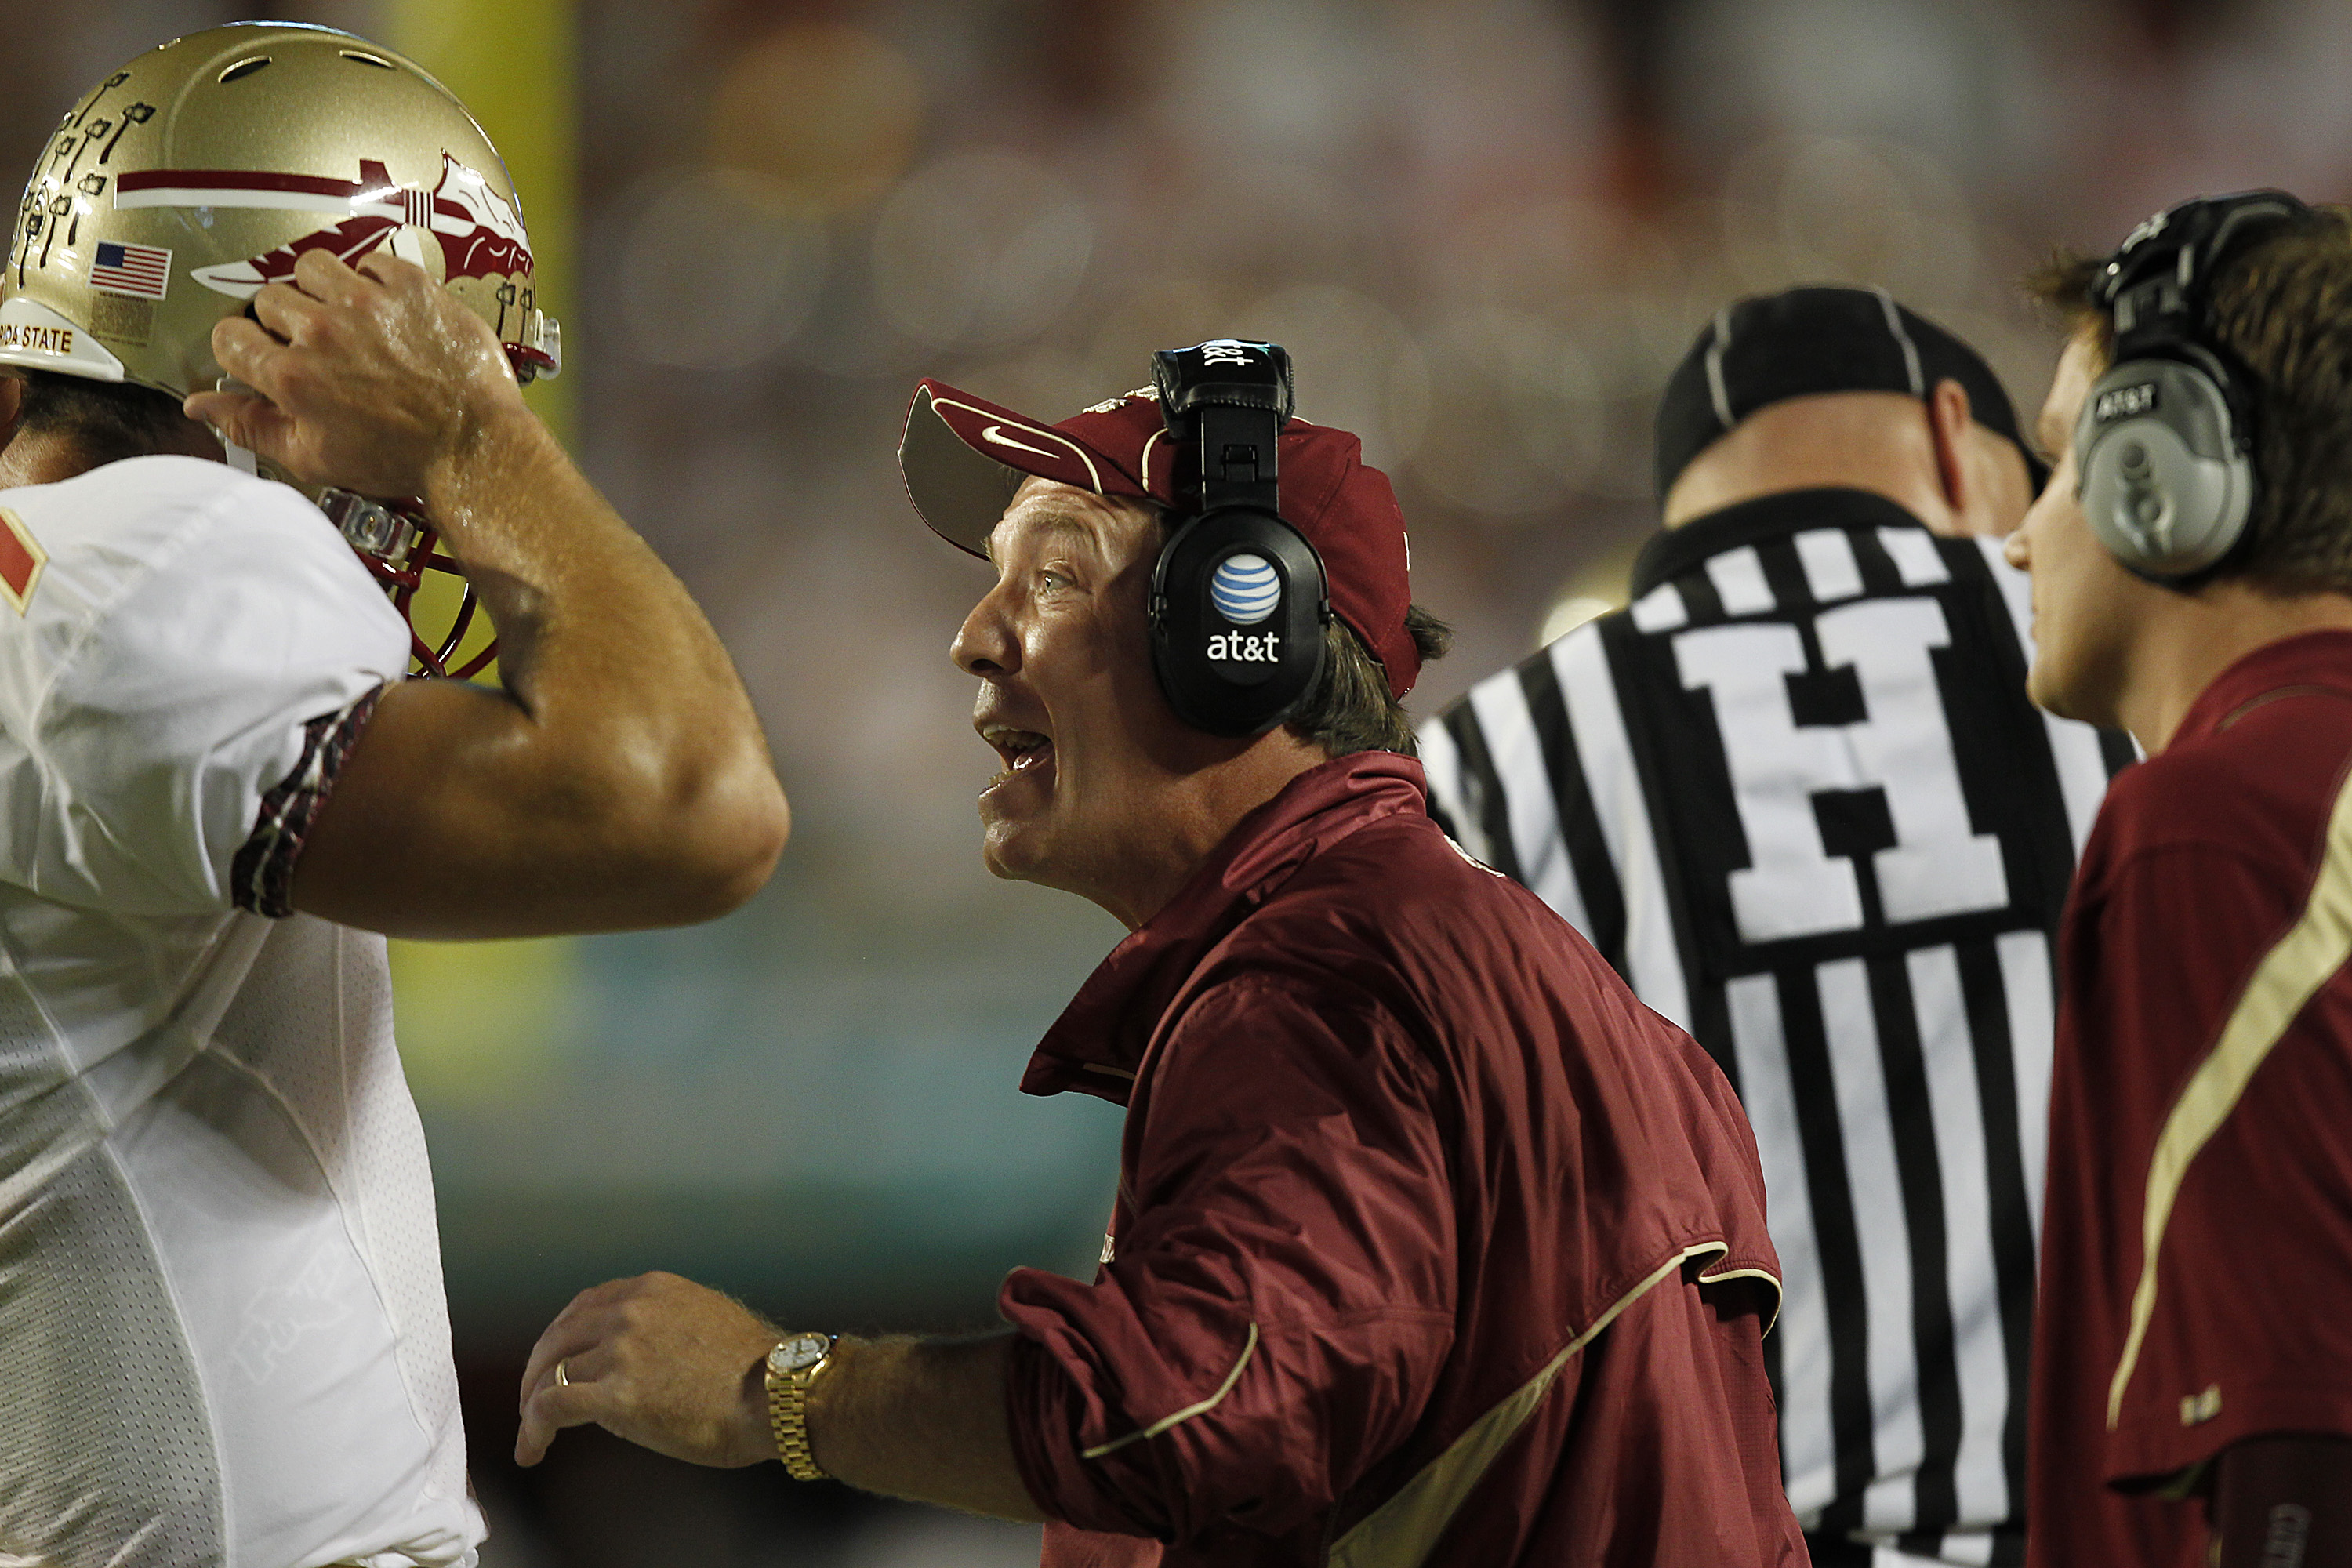 MIAMI, FL - OCTOBER 9: Head coach Jimbo Fisher talks to Christian Ponder #7 of the Florida State Seminoles during first half action against the Miami Hurricanes on October 9, 2010 at Sun Life Stadium in Miami, Florida. (Photo by Joel Auerbach/Getty Images